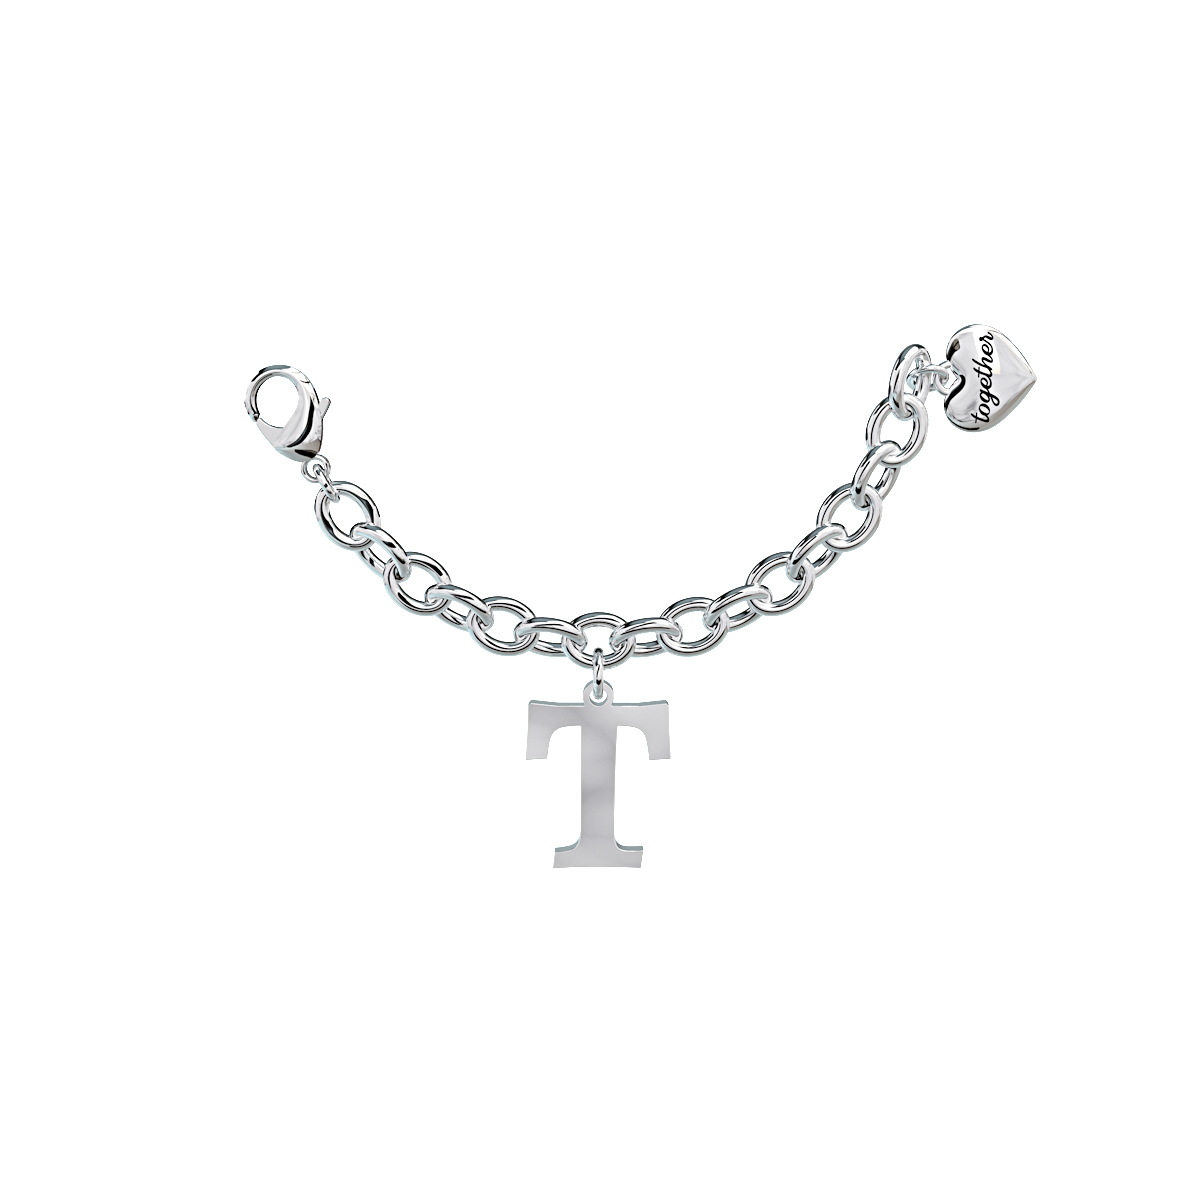 Elemento Single Bracciale 2jewels donna Together componibile lettera T 131060T